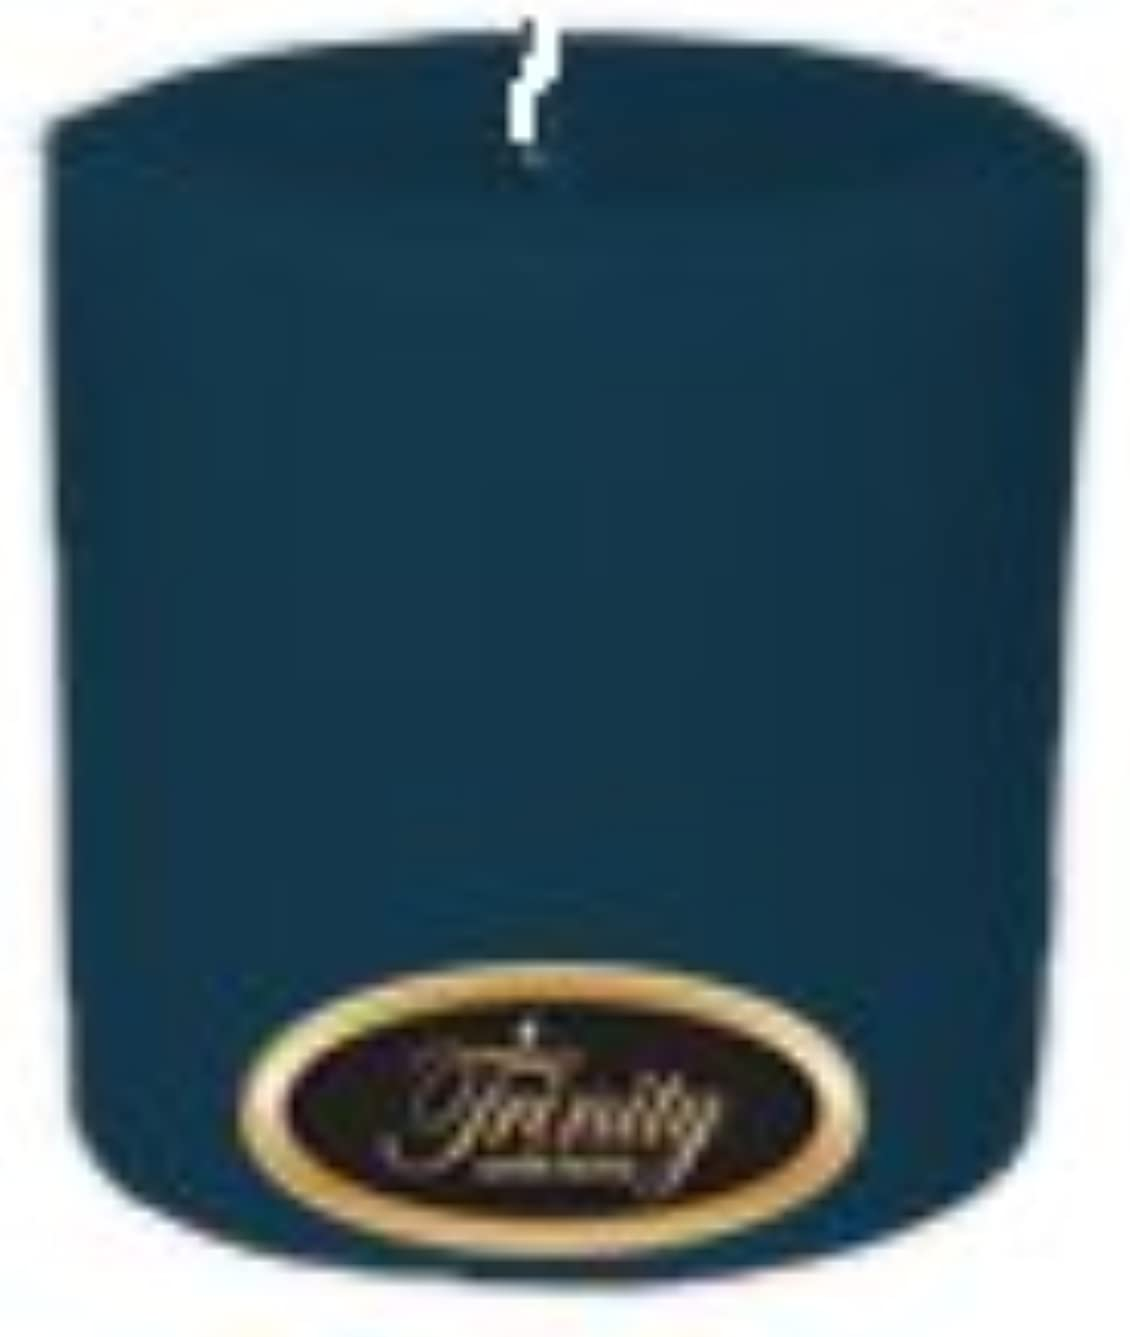 敵対的びっくり告発Trinity Candle工場 – French Market – Pillar Candle – 4 x 4